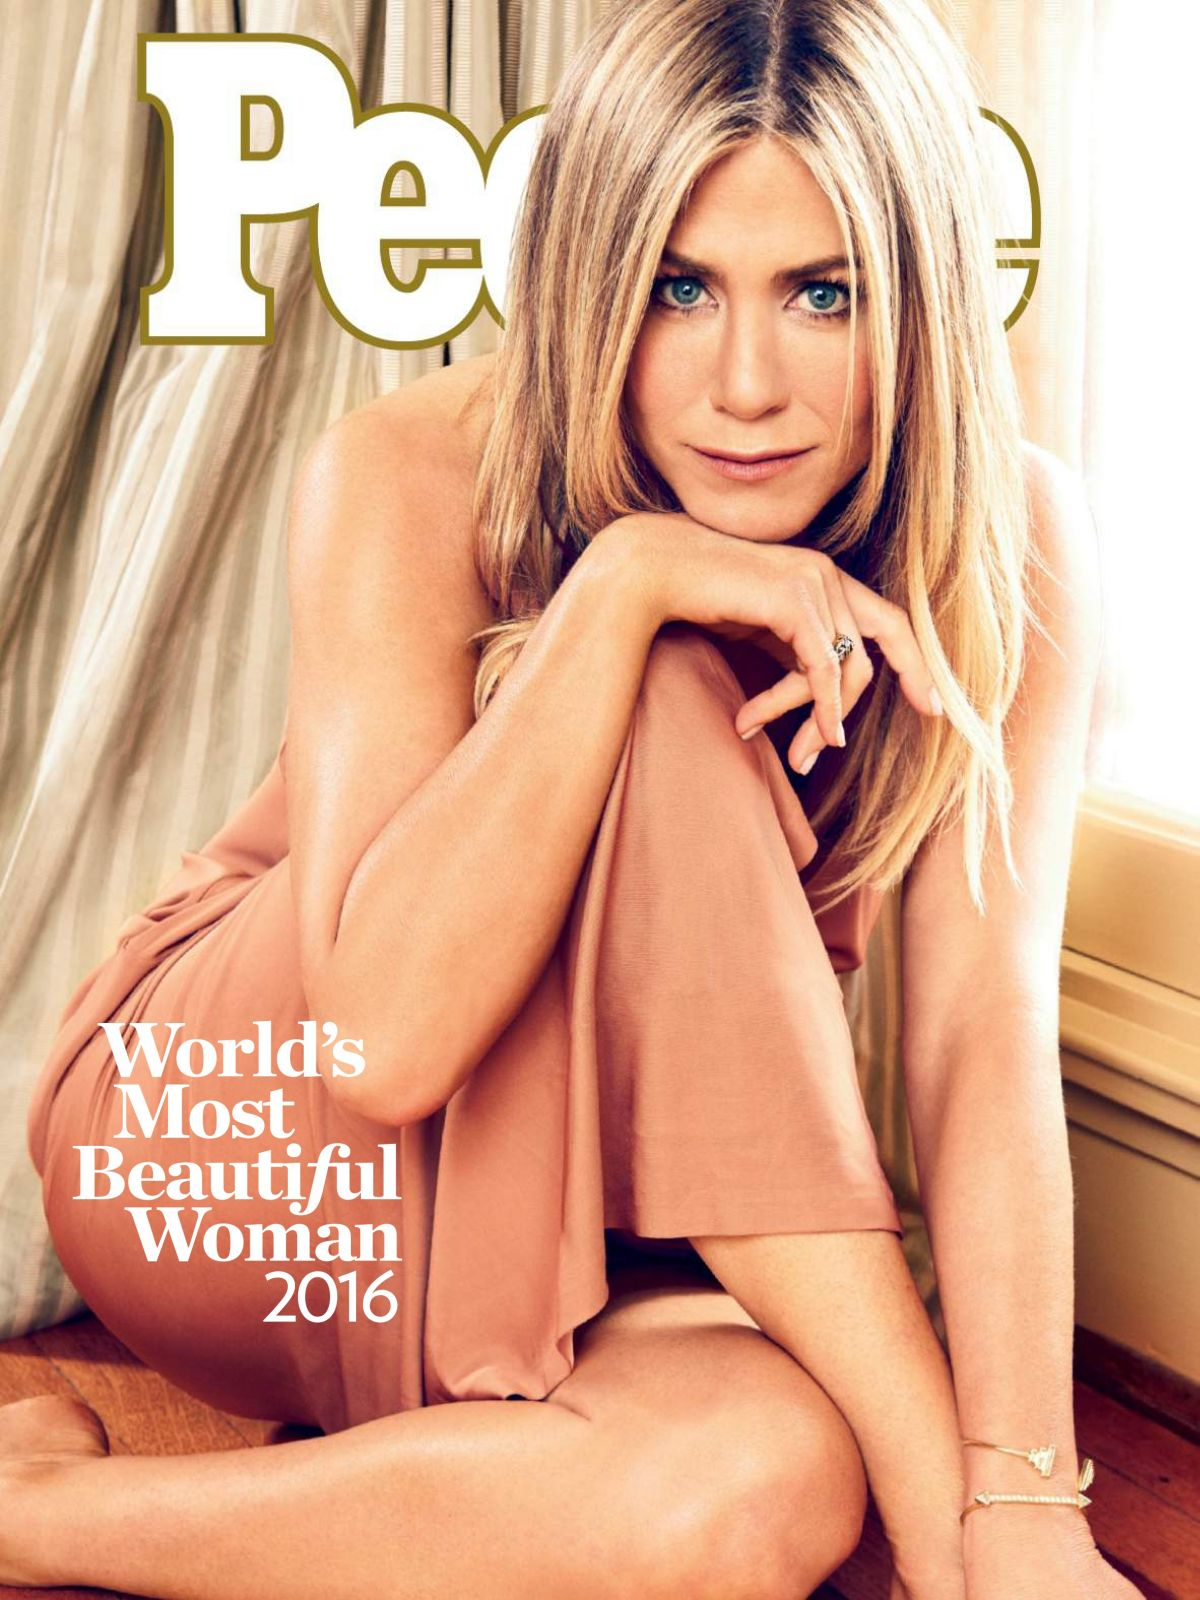 Top 10 fotos sexys de Jennifer Aniston - Top 10 Listas